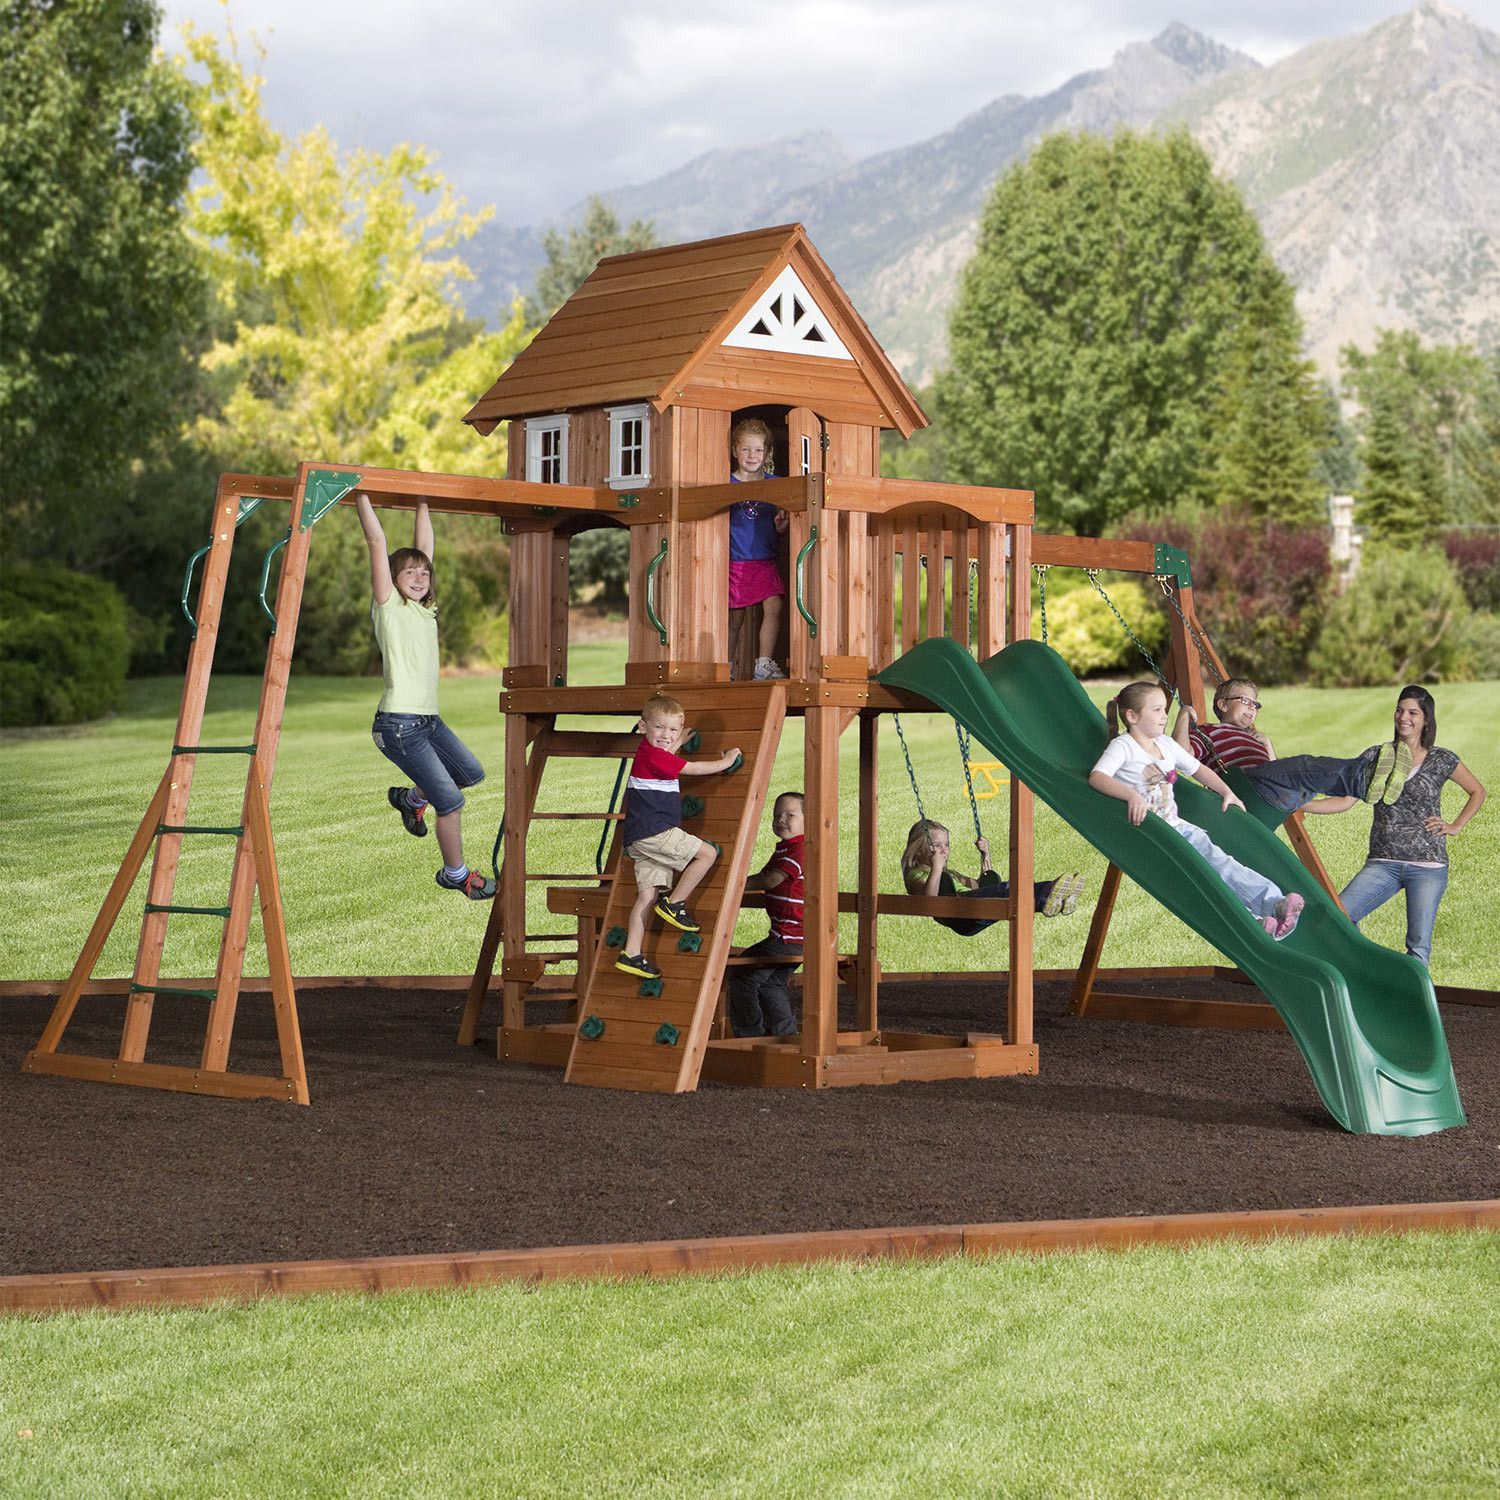 The Cedar Peak is a great swing set that is all cedar, with a monkey bar beam and a swing beam. It has an upper fort that has a wood roof, sunburst end gables a